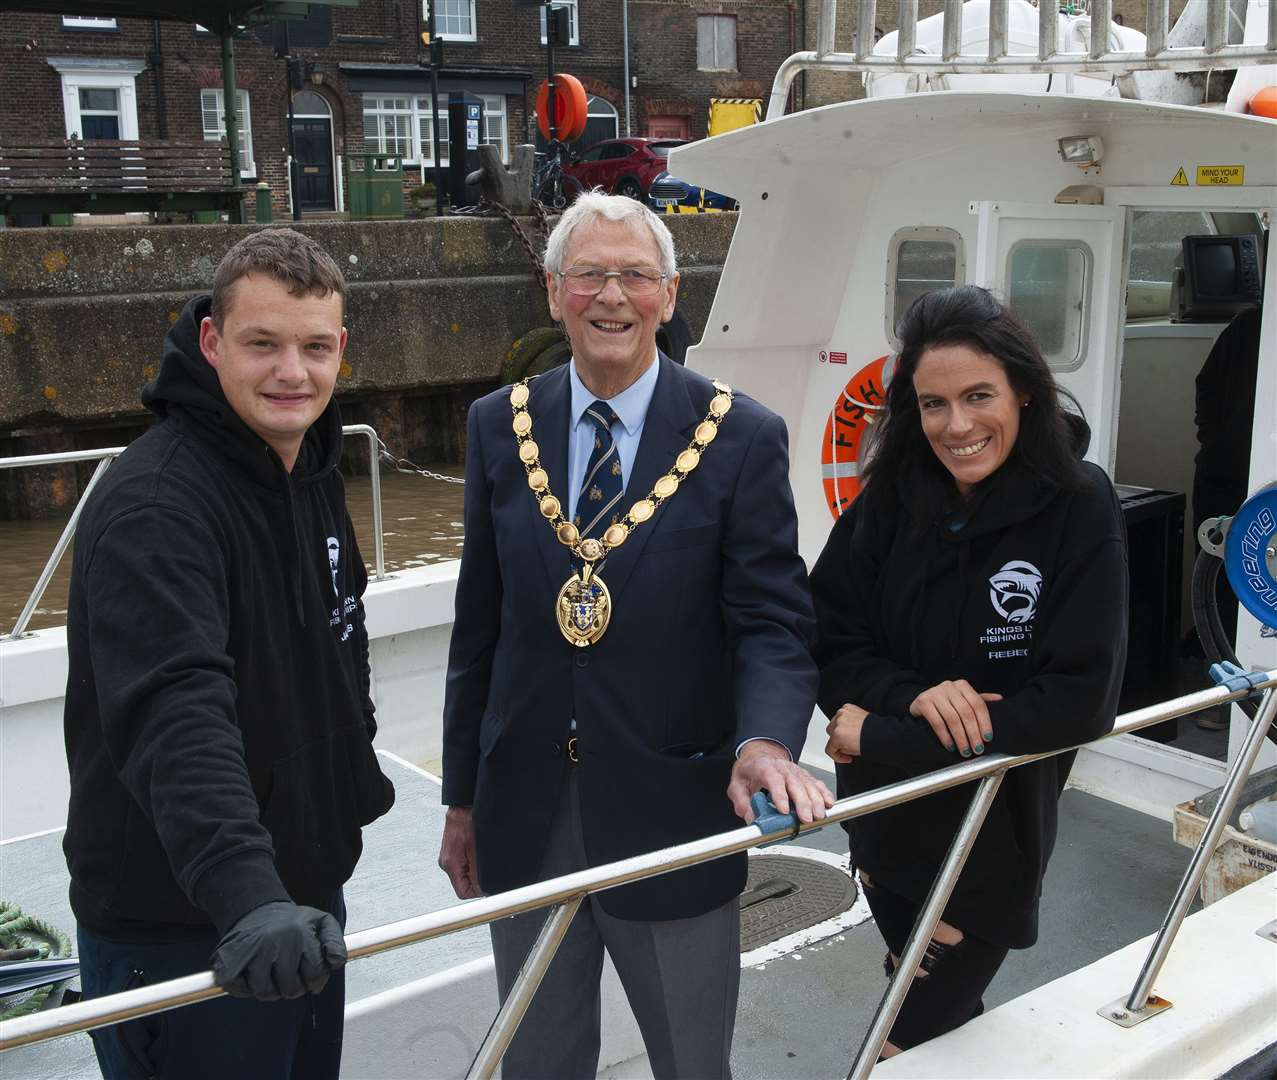 Borough Mayor Harry Humphrey, centre, met James Castleton and Rebecca Rowbotham at the recent launch of their business offering commercial fishing trips from Lynn's pontoons.